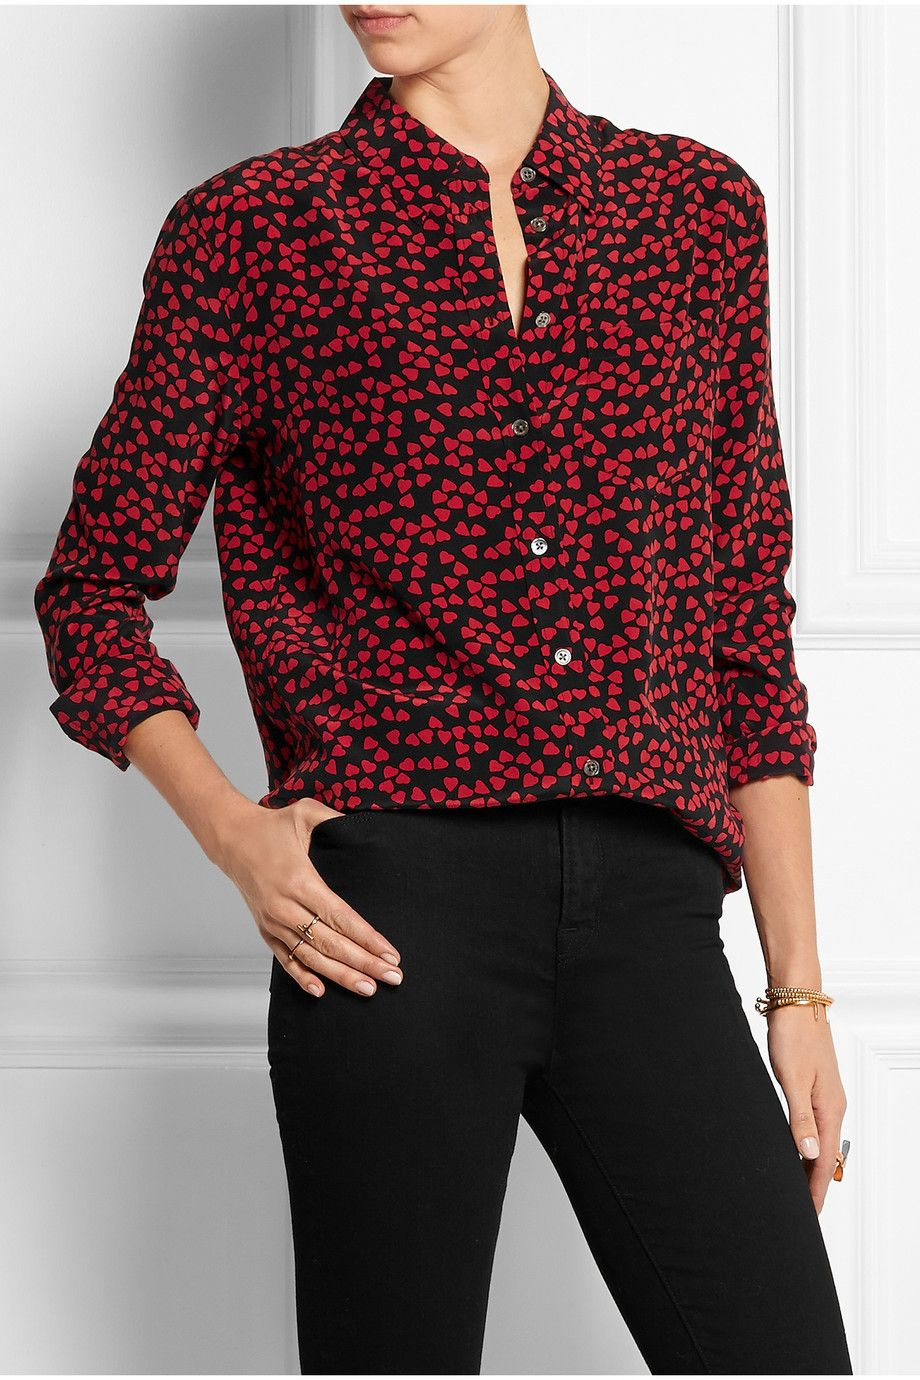 Equipment black with red hearts print long sleeved silk shirt